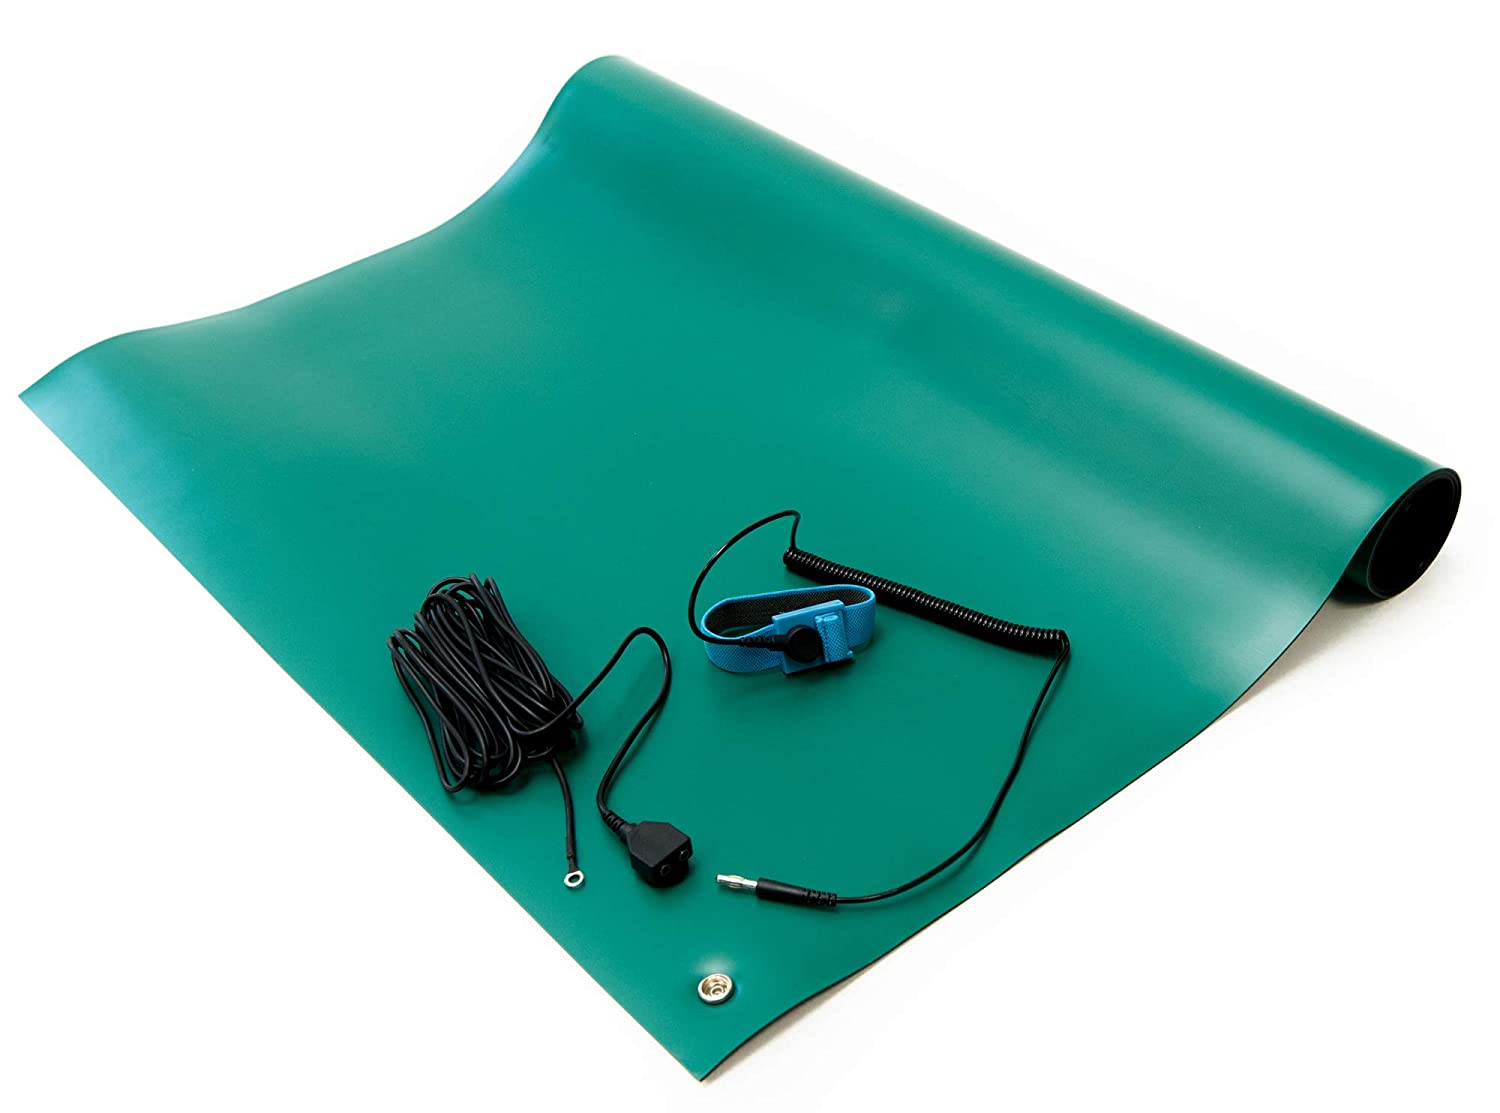 Bertech Rubber ESD Soldering Mat Kit with a Wrist Strap and Grounding Cord, 2' Wide x 3' Long, Green 61BZ7SZNDML